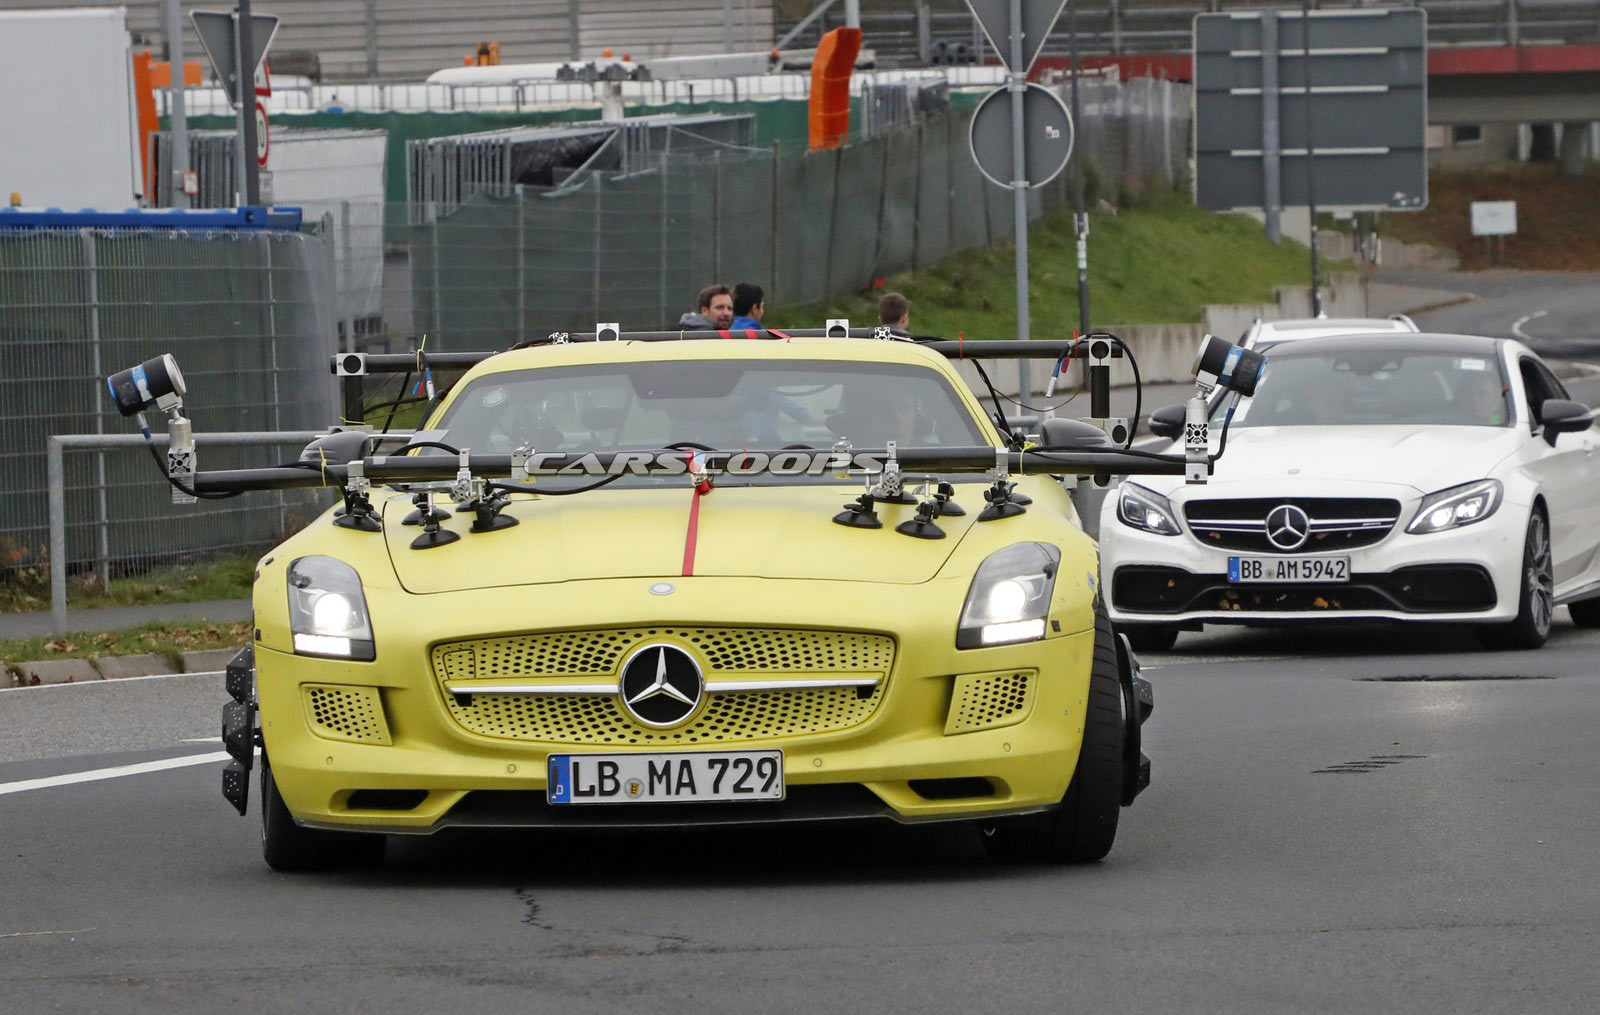 Sonax Amg Mercedes Clrp Lmp1: Mercedes SLS AMG Electric Drive Makes A Surprising Return